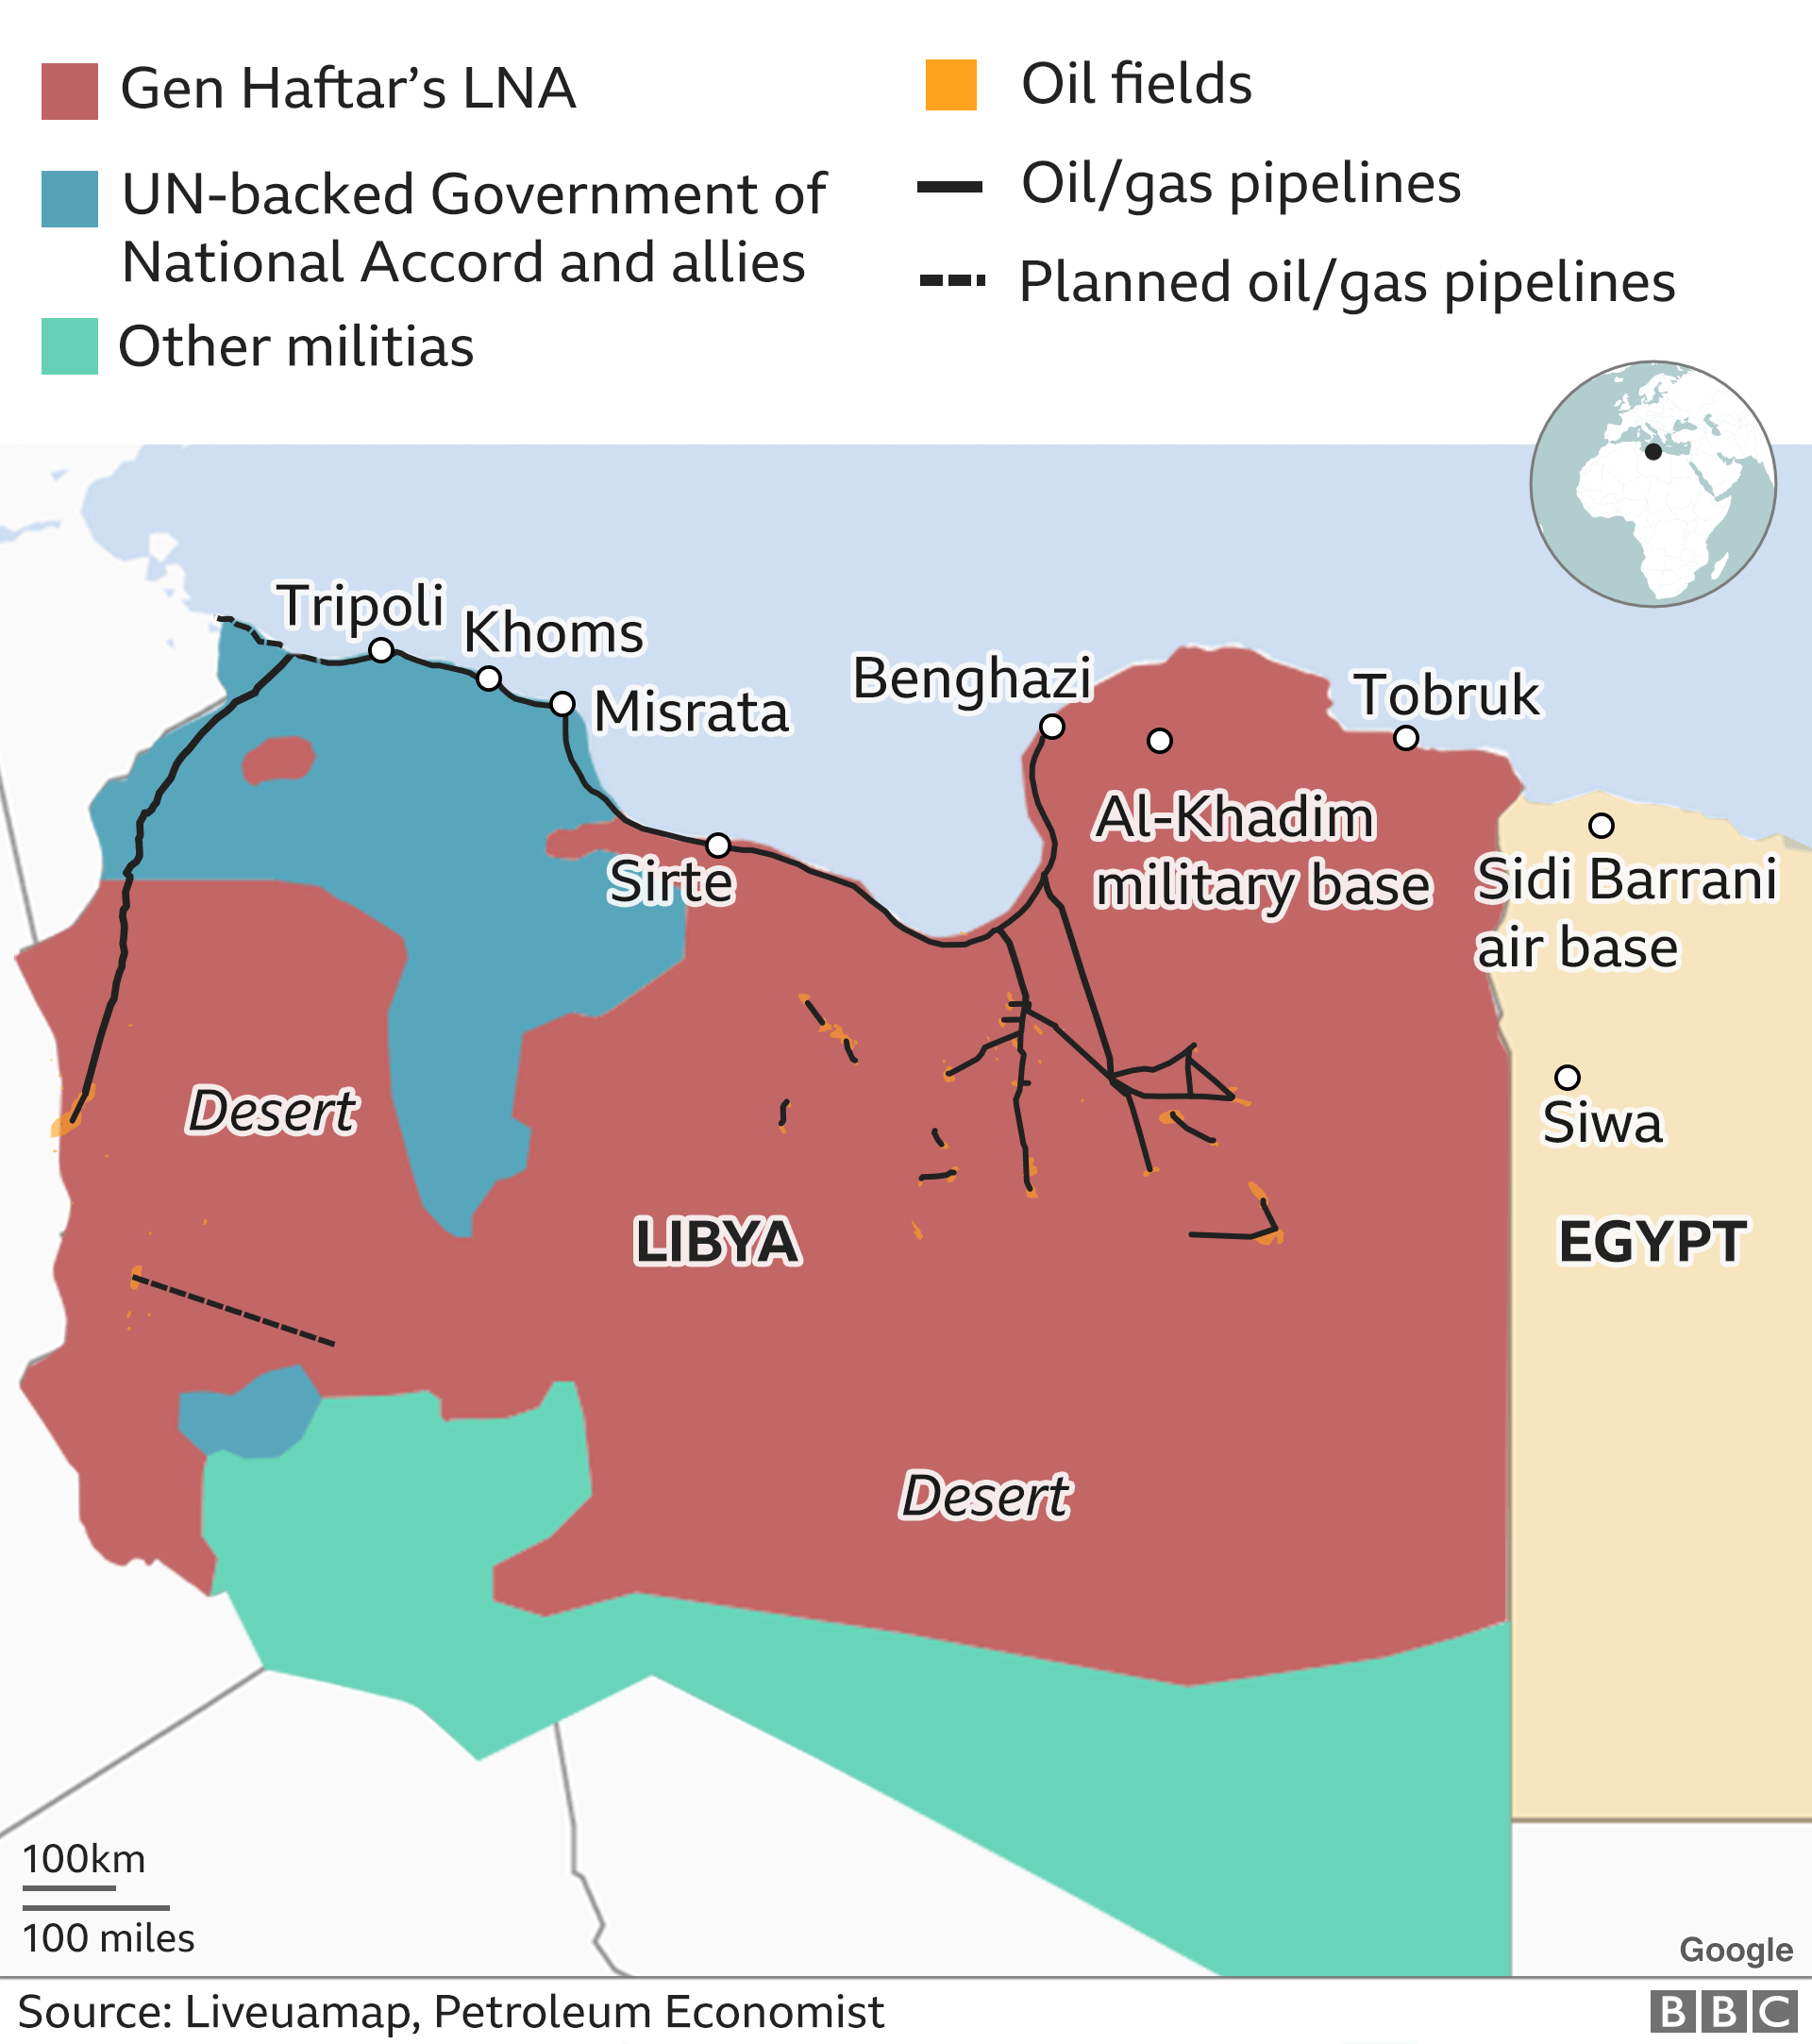 map showing areas of control in Libya